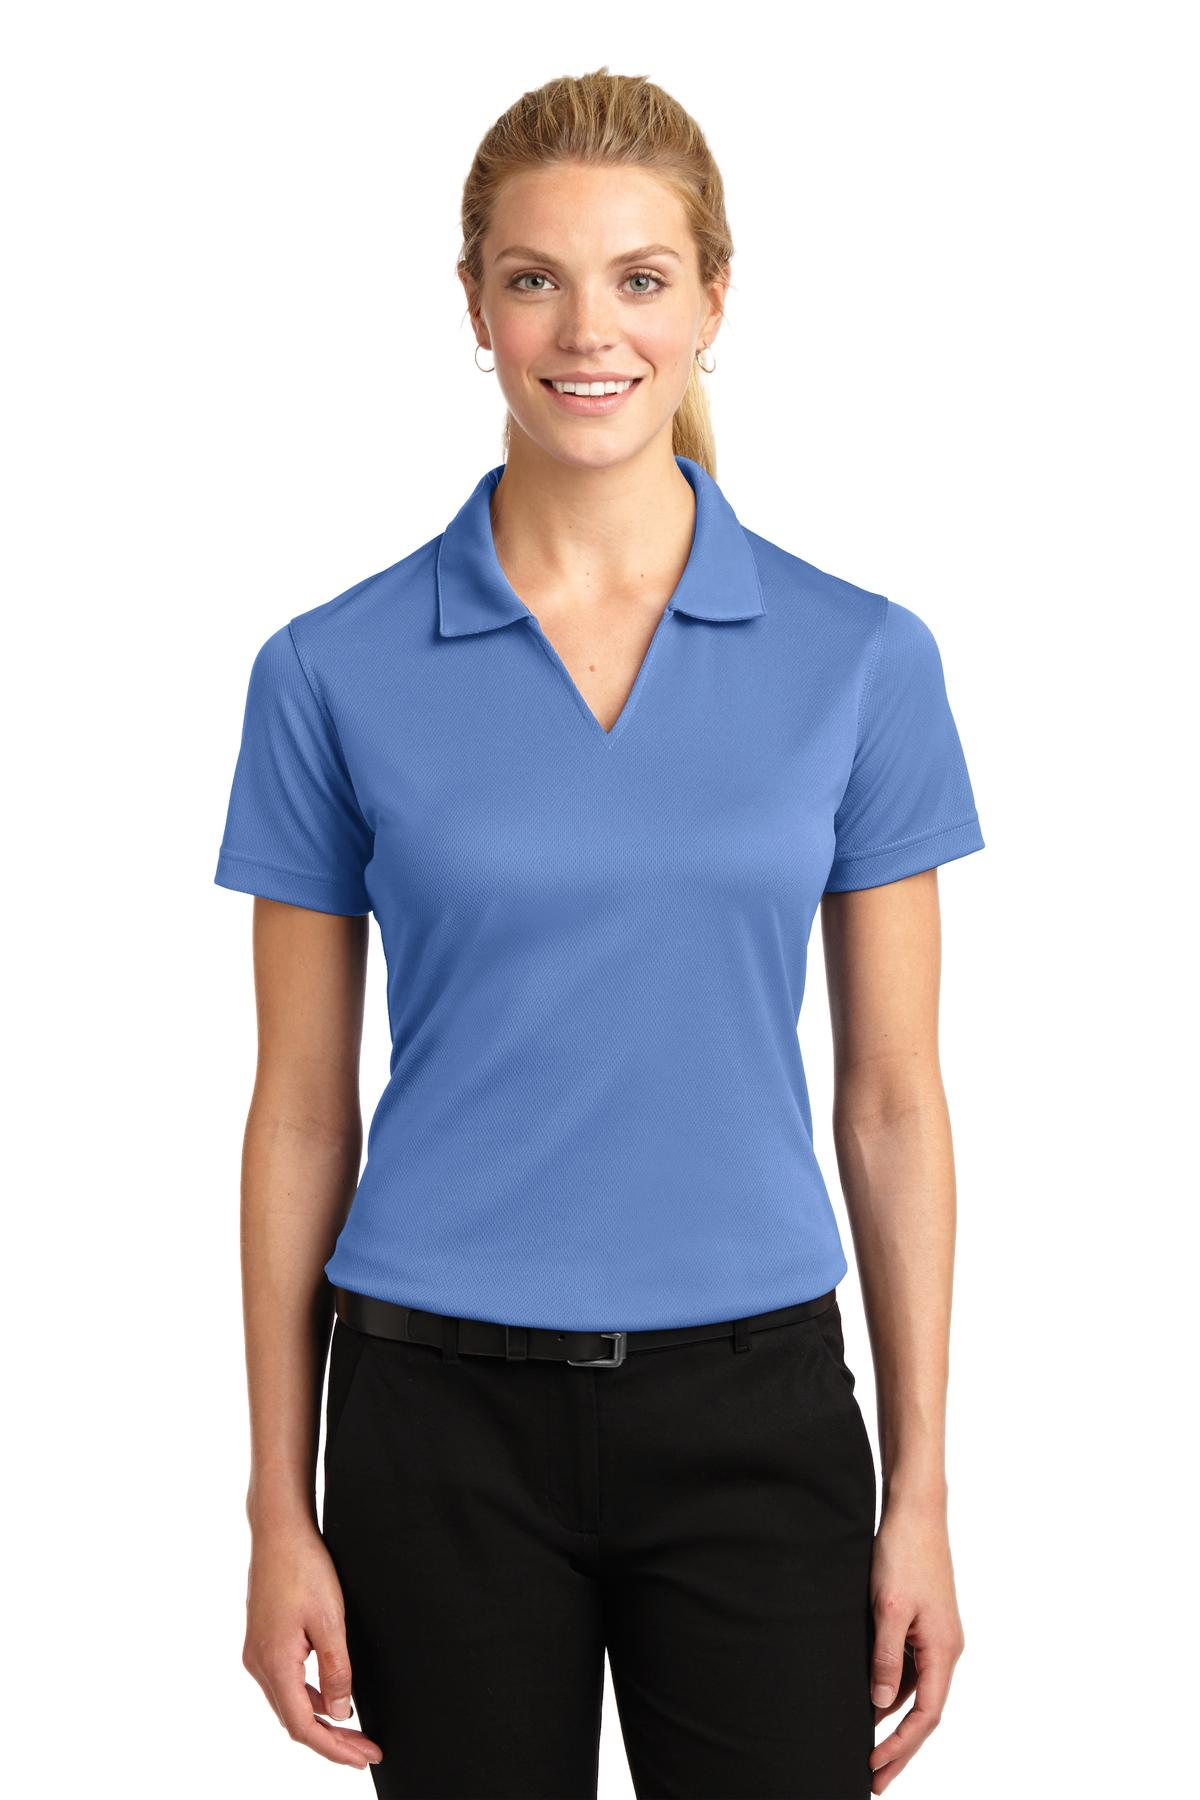 Sport-Tek ®  Ladies Dri-Mesh ®  V-Neck Polo.  L469 - Blueberry